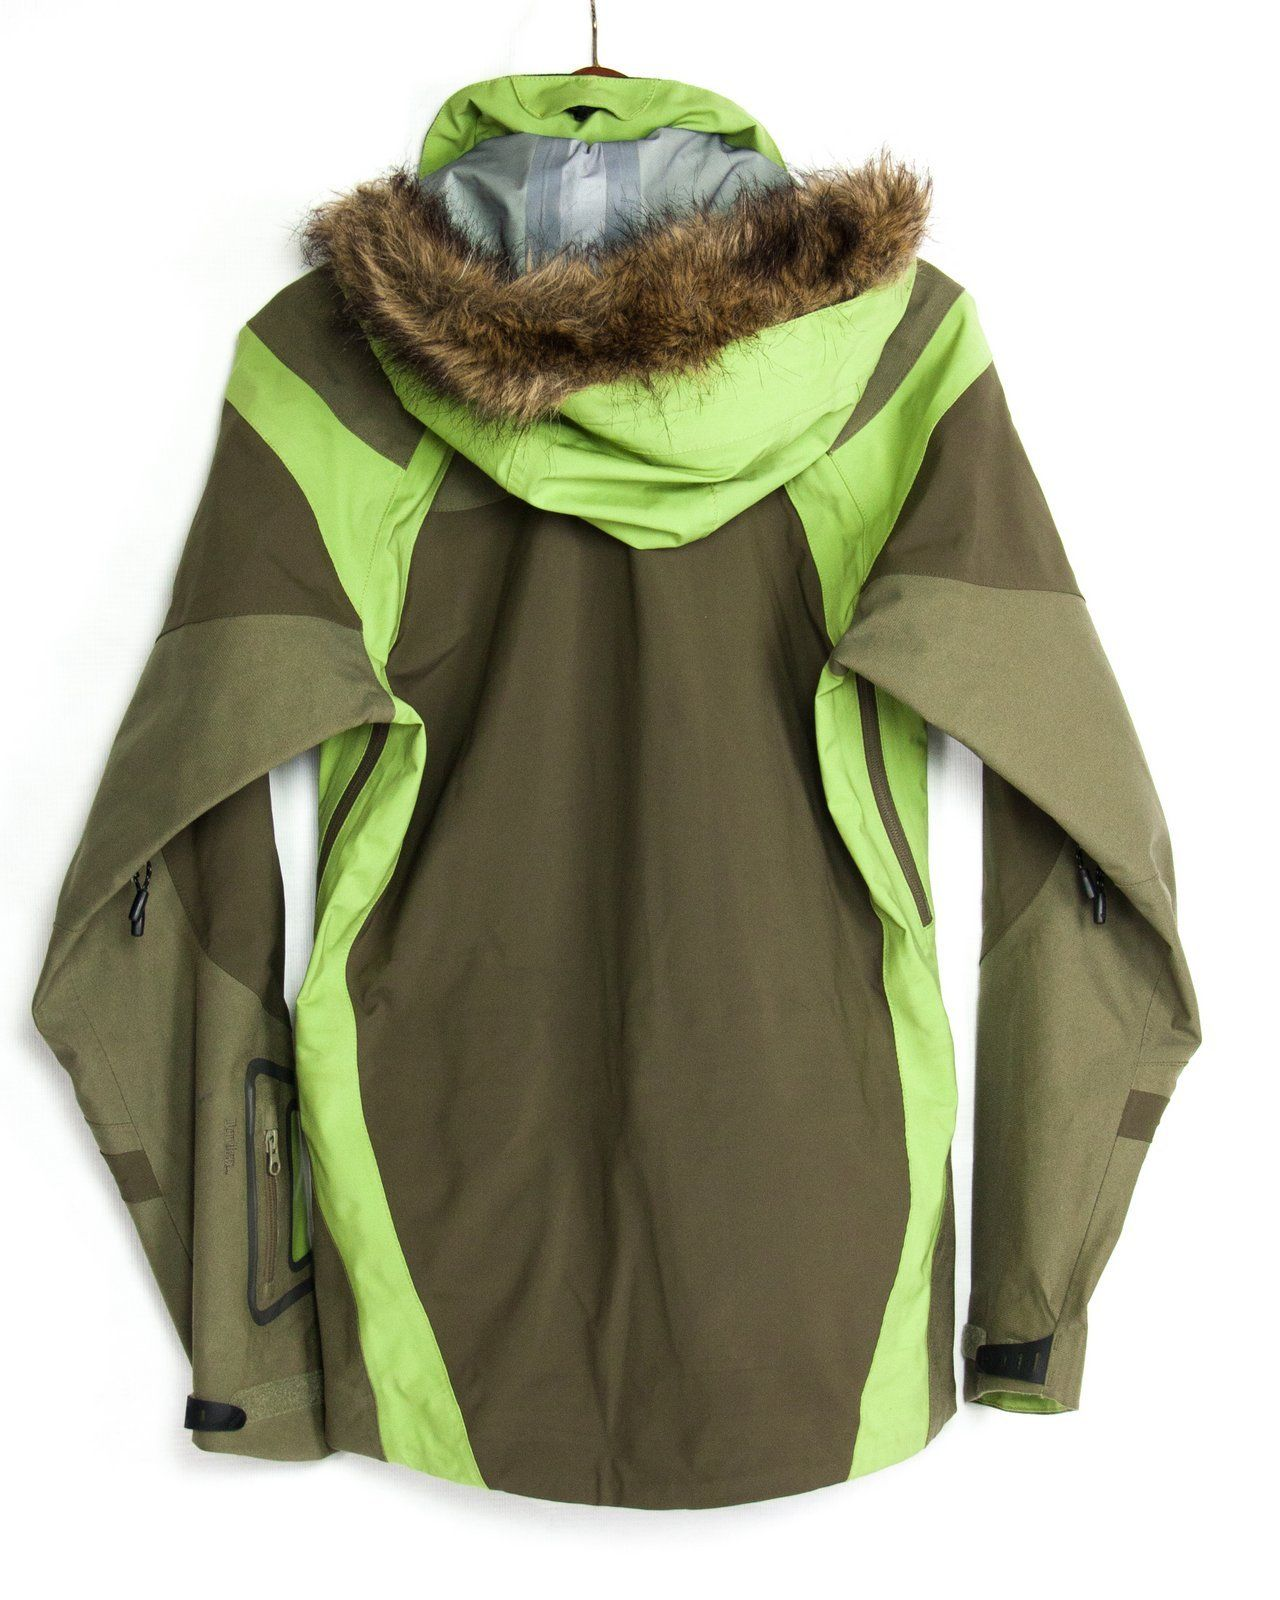 BERGANS OF NORWAY Dermizax Waterproof Shell Jacket SIZE S - secondfirst